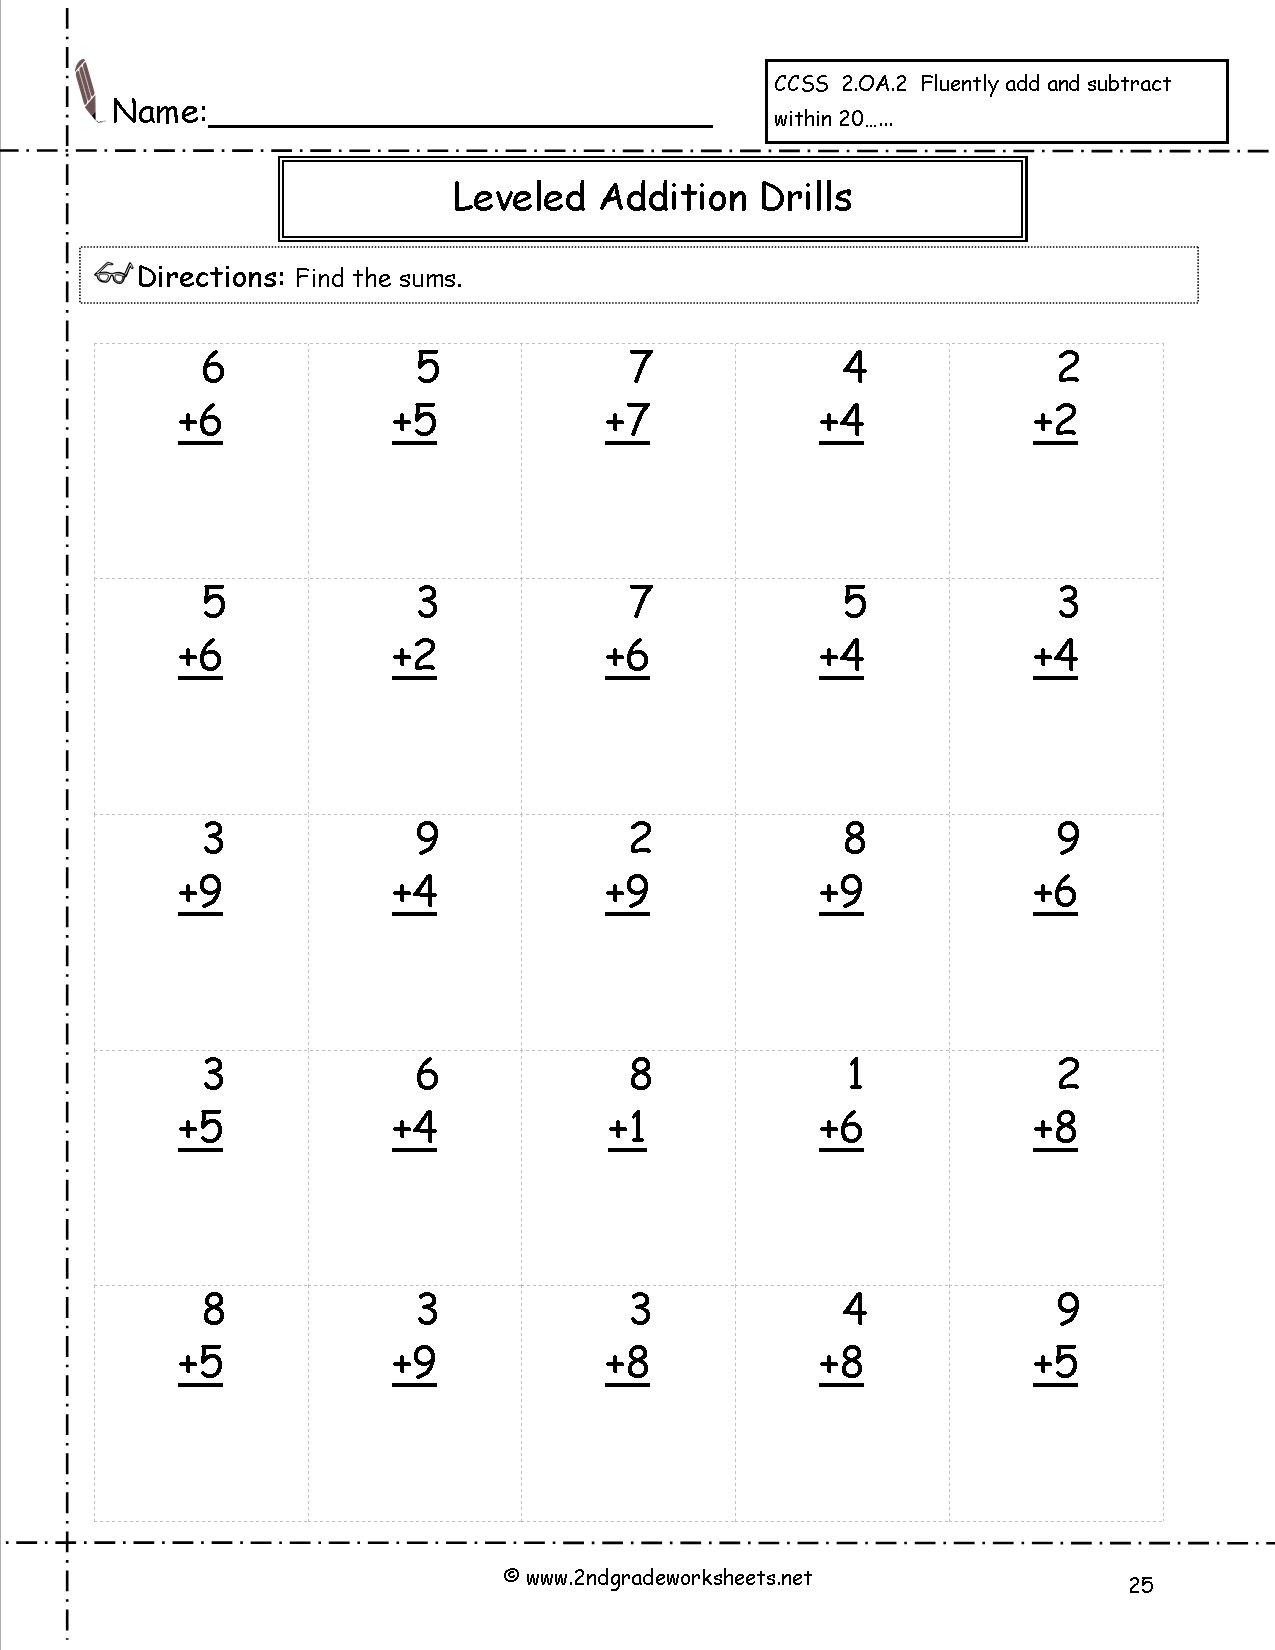 Free Math Worksheets And Printouts - Free Printable Second Grade Math Worksheets